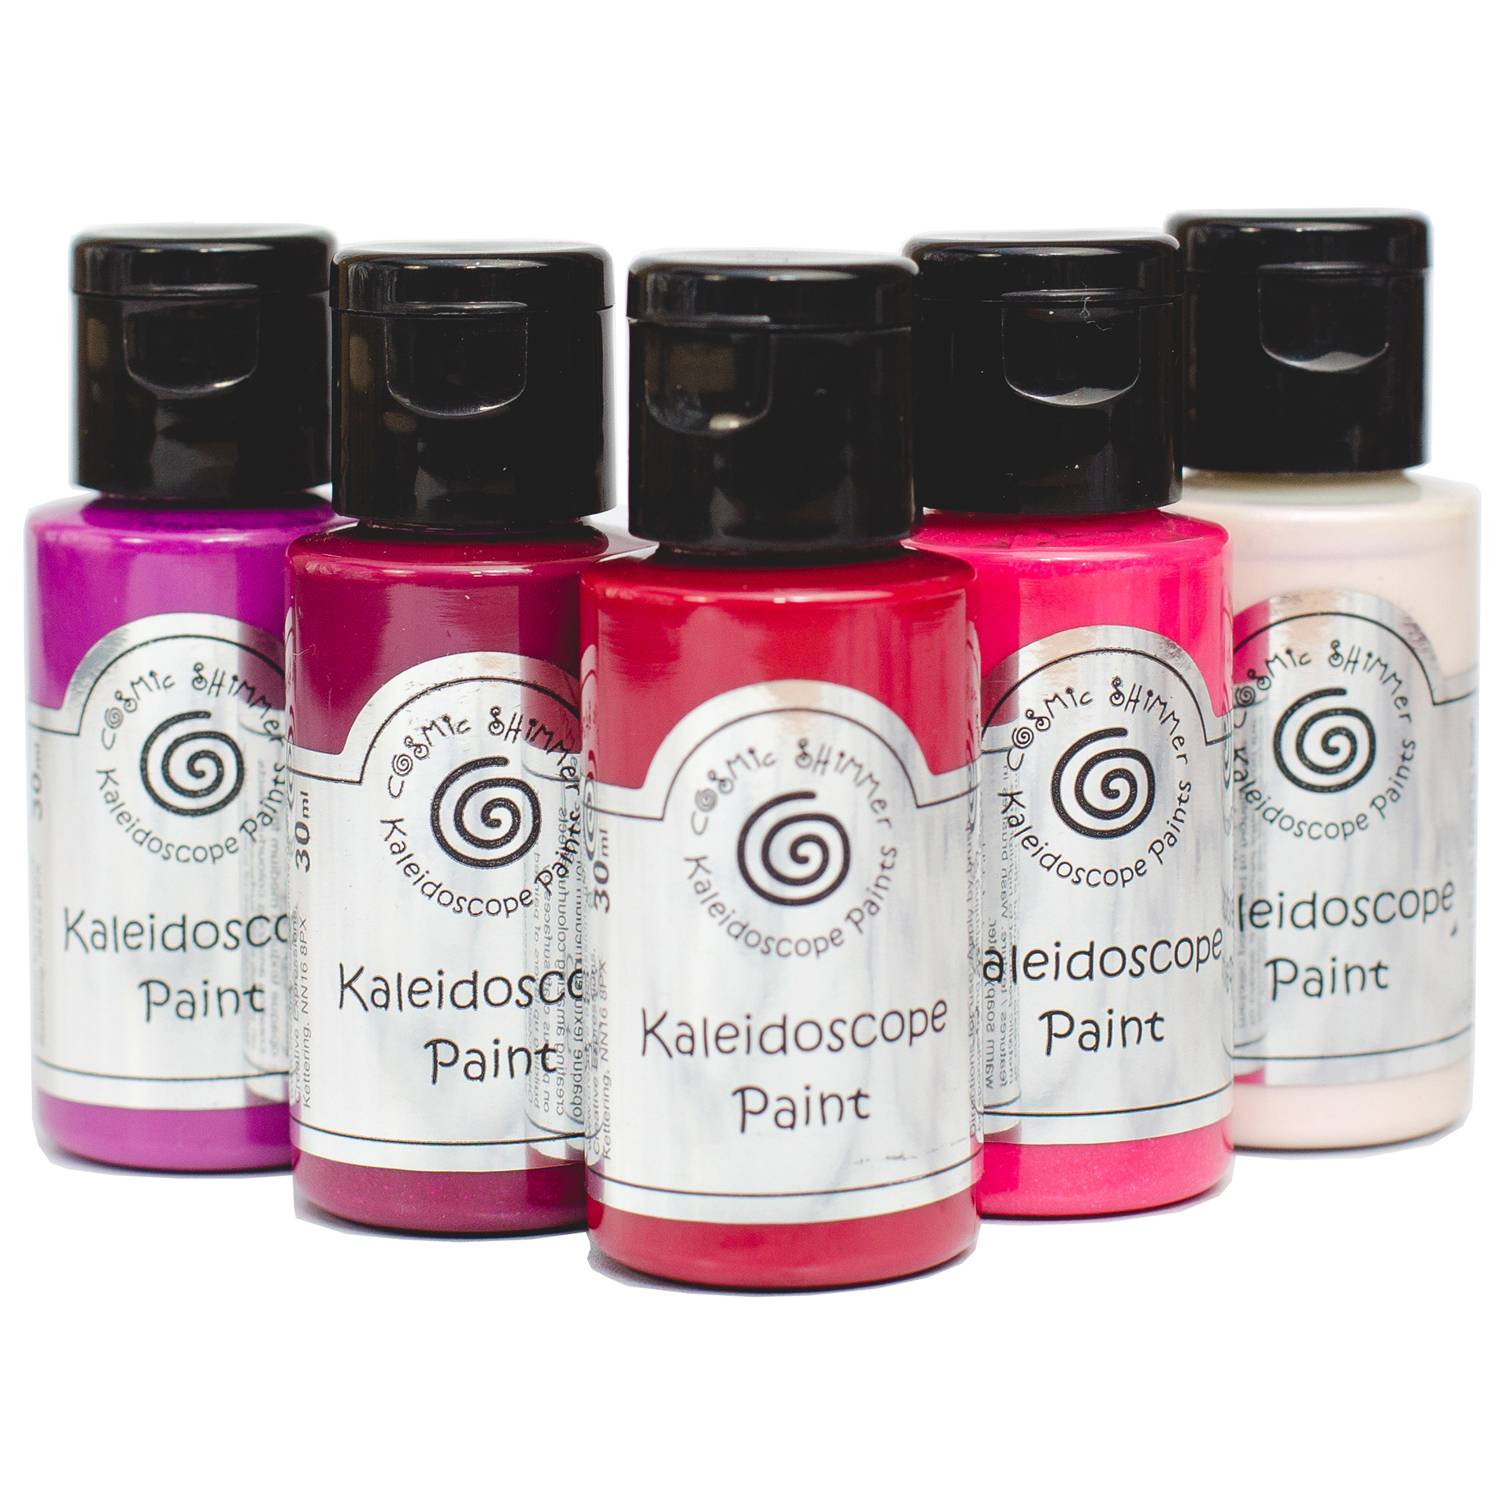 Creative Expressions - Cosmic Shimmer Kaleidoscope Paint